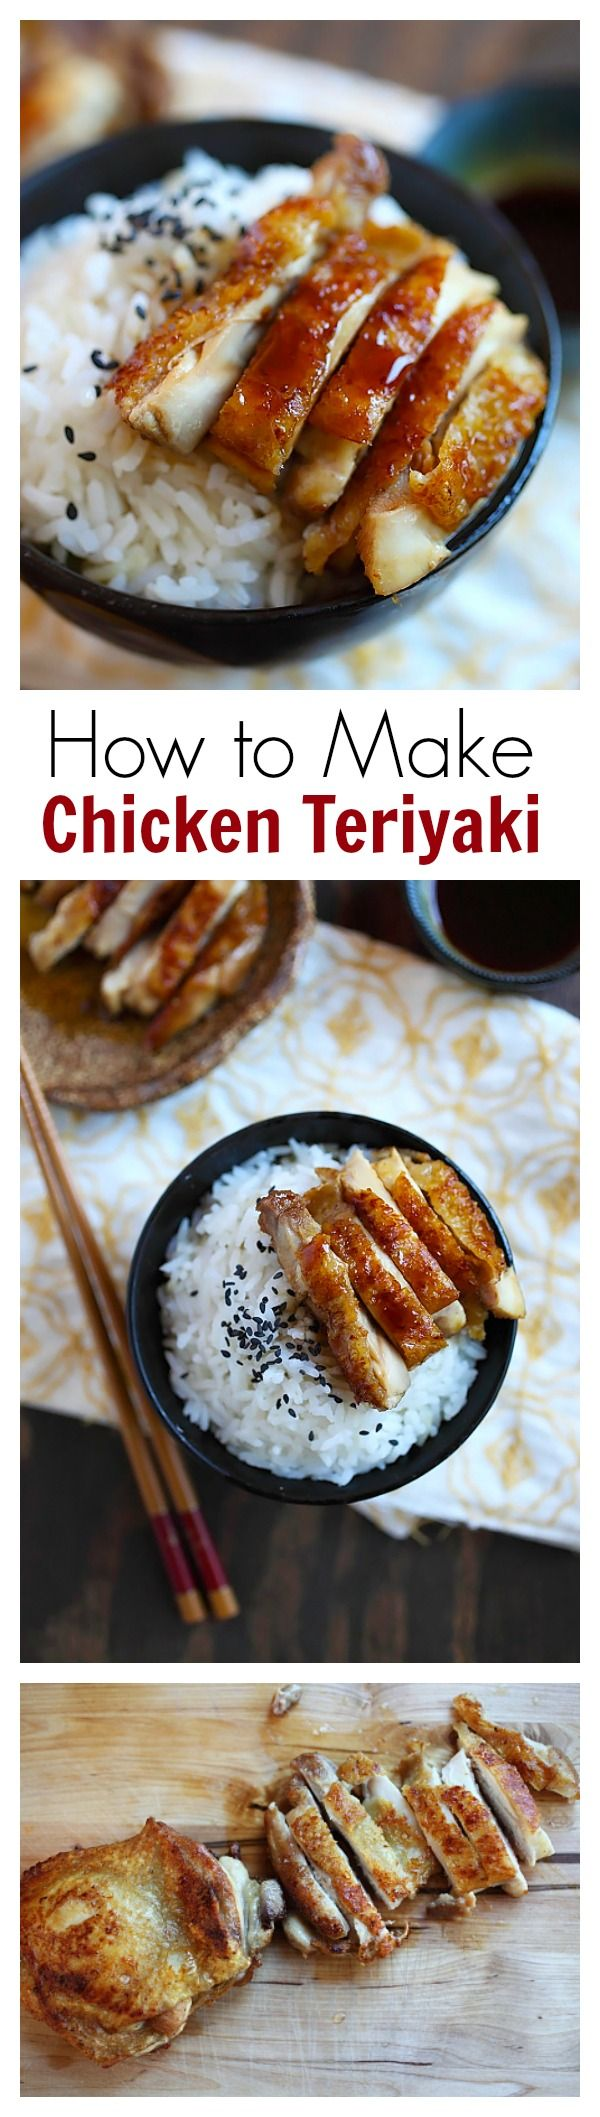 How to make chicken teriyaki? EASY recipe for teriyaki sauce plus chicken teriyaki that tastes like Japanese restaurants | rasamalaysia.com @rasamalaysia